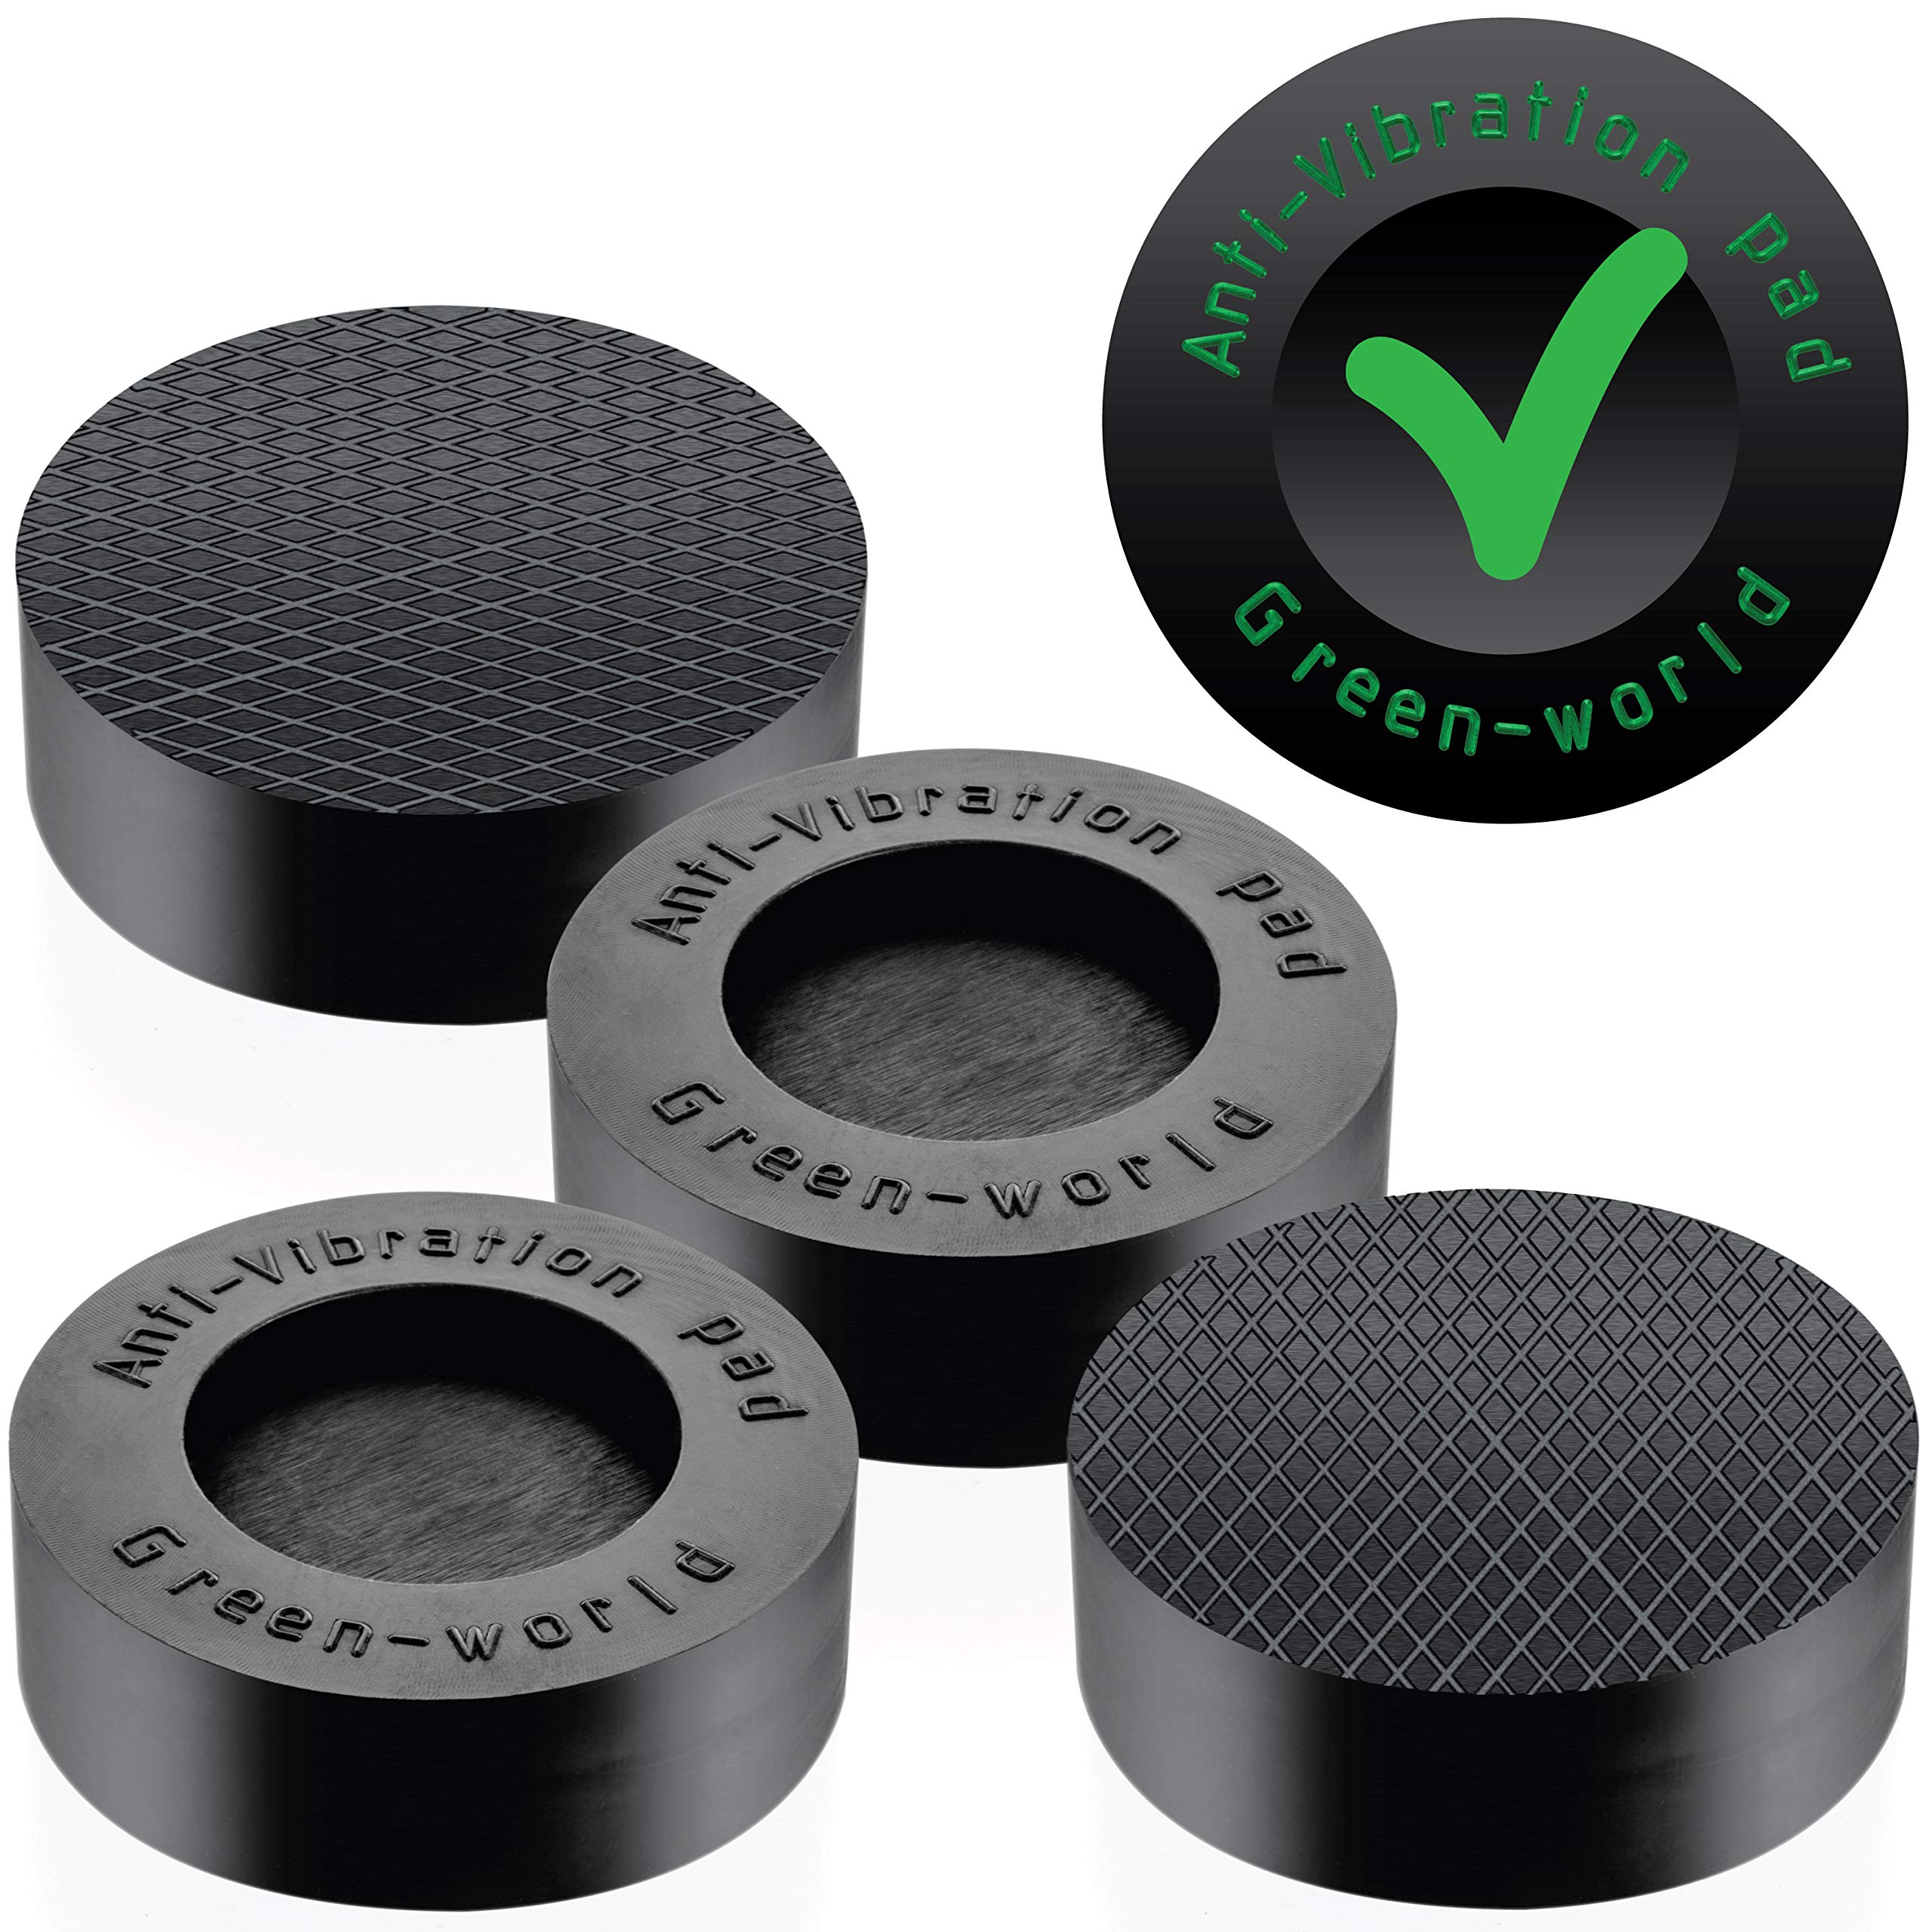 Washer Dryer Antivibration and Anti-Walk Pads - Portable Anti Vibrant Pad set of 4 - Excludes Walking Reduces Vibration as Washing Machine Pan Tray Stabilizer Pedestal- by Green-World